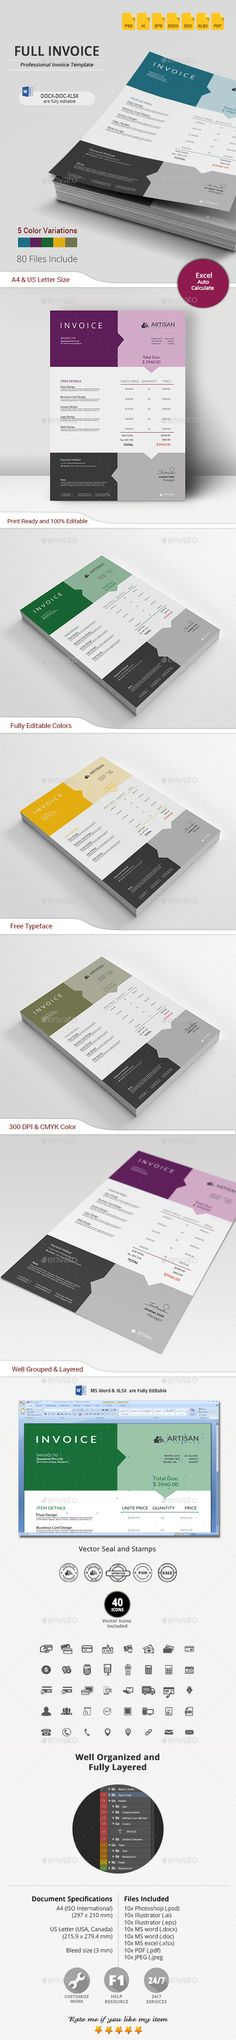 Invoice Template By Contestdesign This Is The Studiofire Invoice